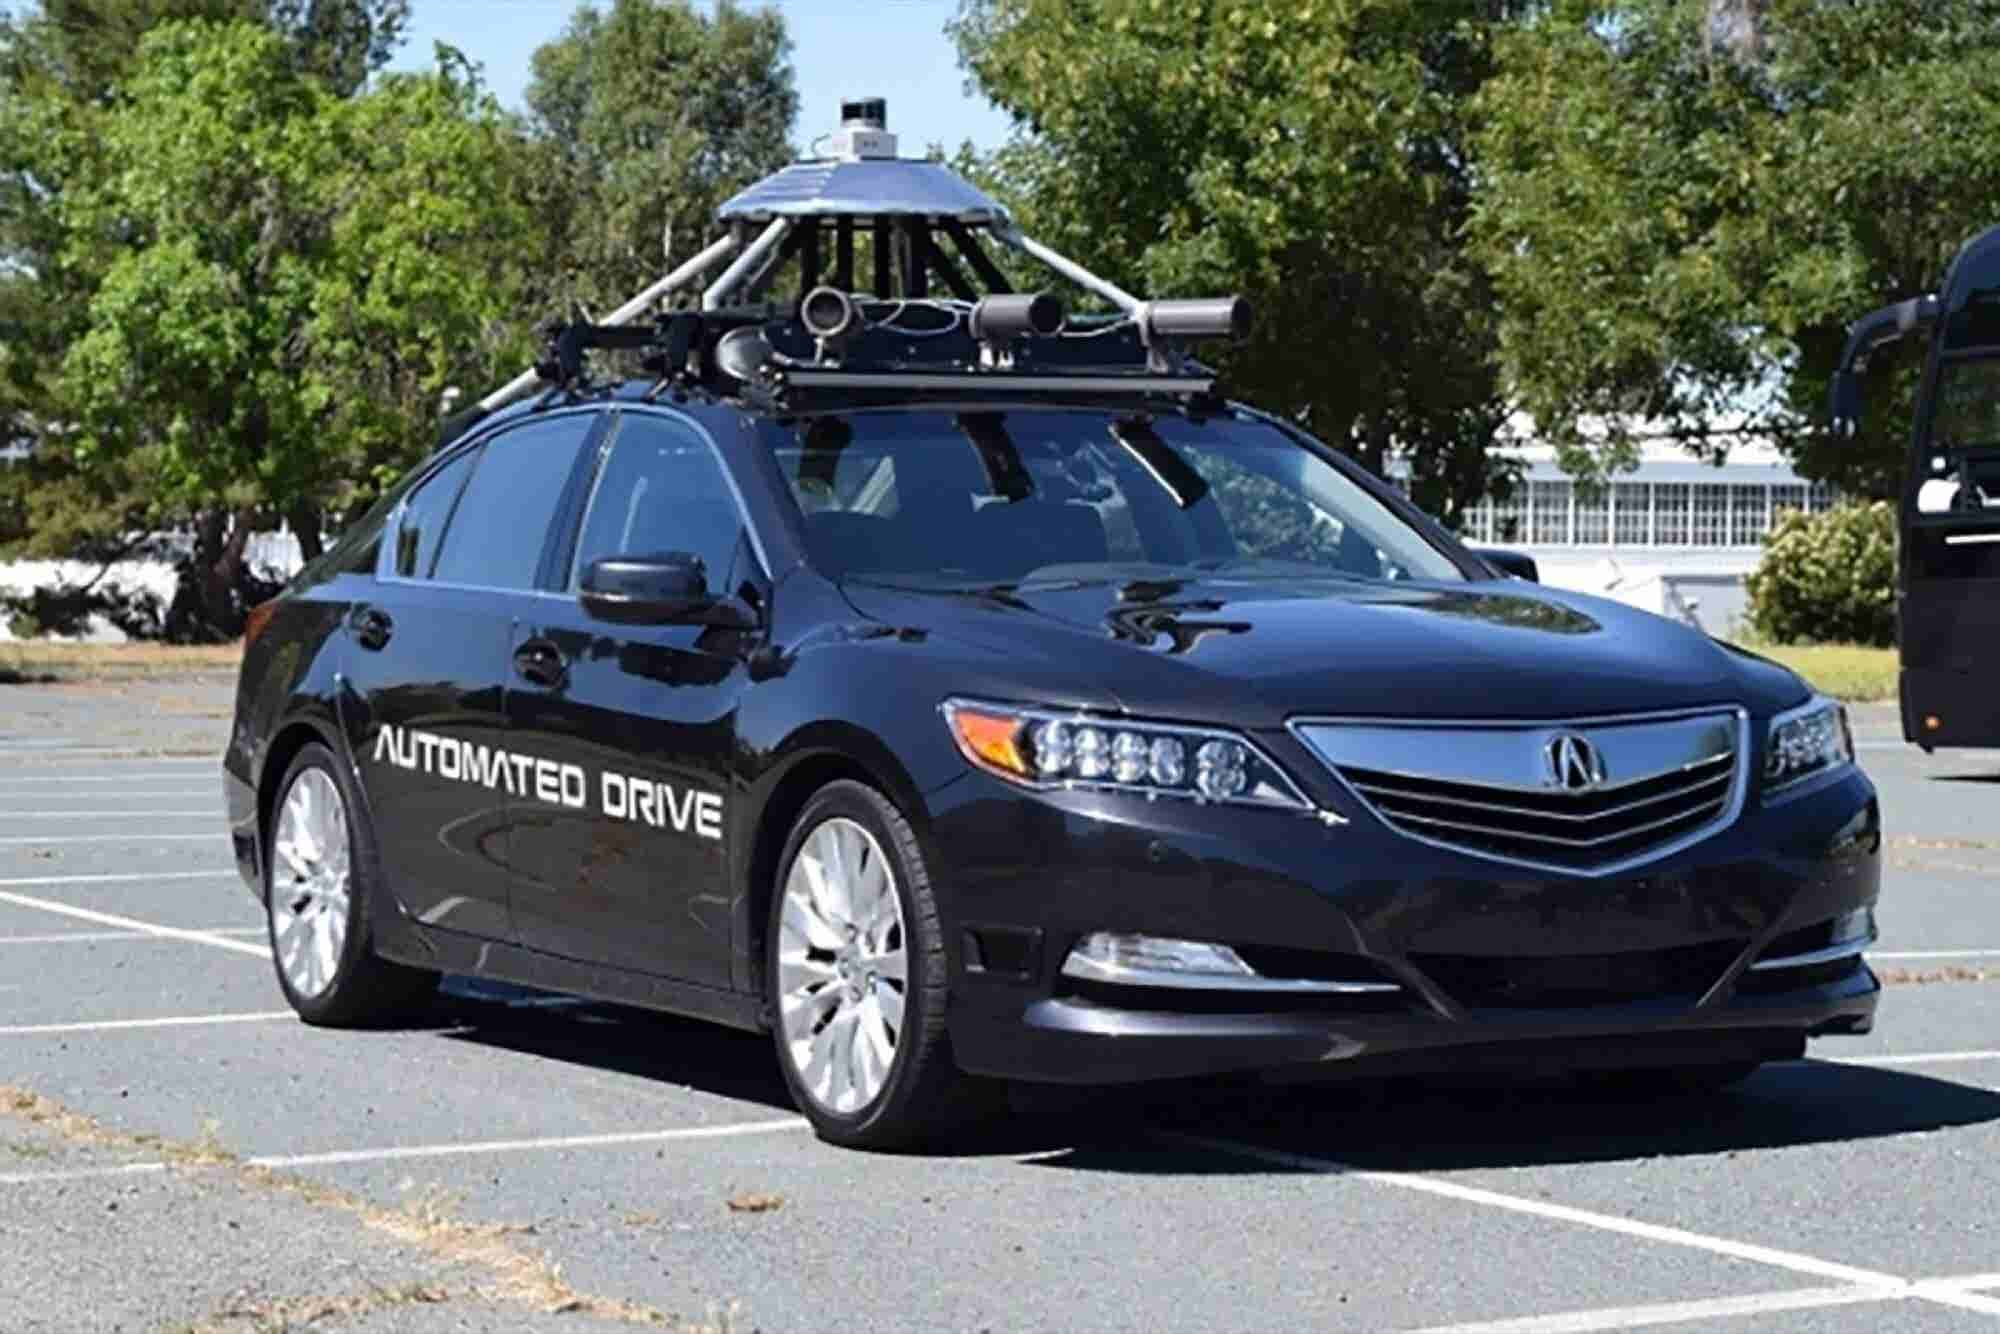 Who Should Your Self-Driving Car Save in a Crash? You or Pedestrians?